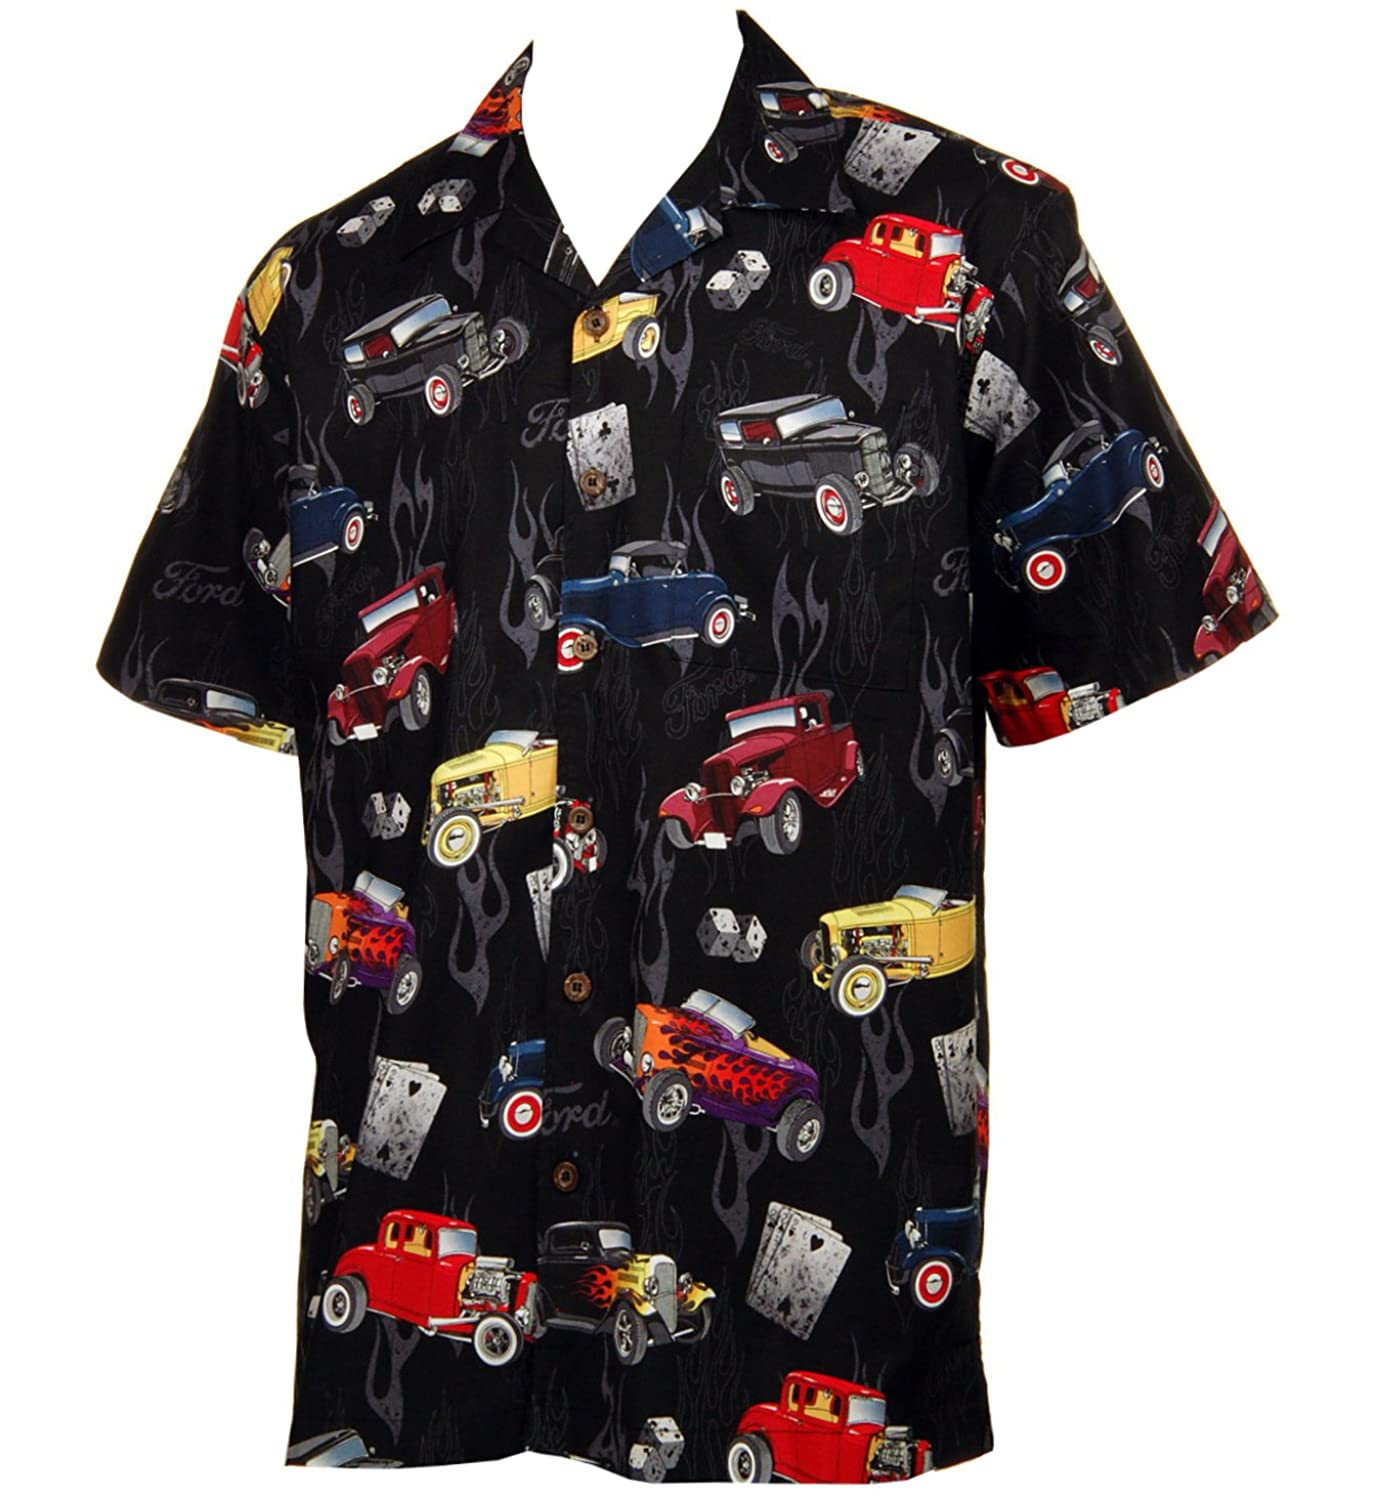 1950s Men's Costumes: Greaser, Elvis, Rockabilly, Prom Ford 32 Deuce Coupes Hot Rod Cars Hawaiian Camp Shirt by David Carey $54.99 AT vintagedancer.com